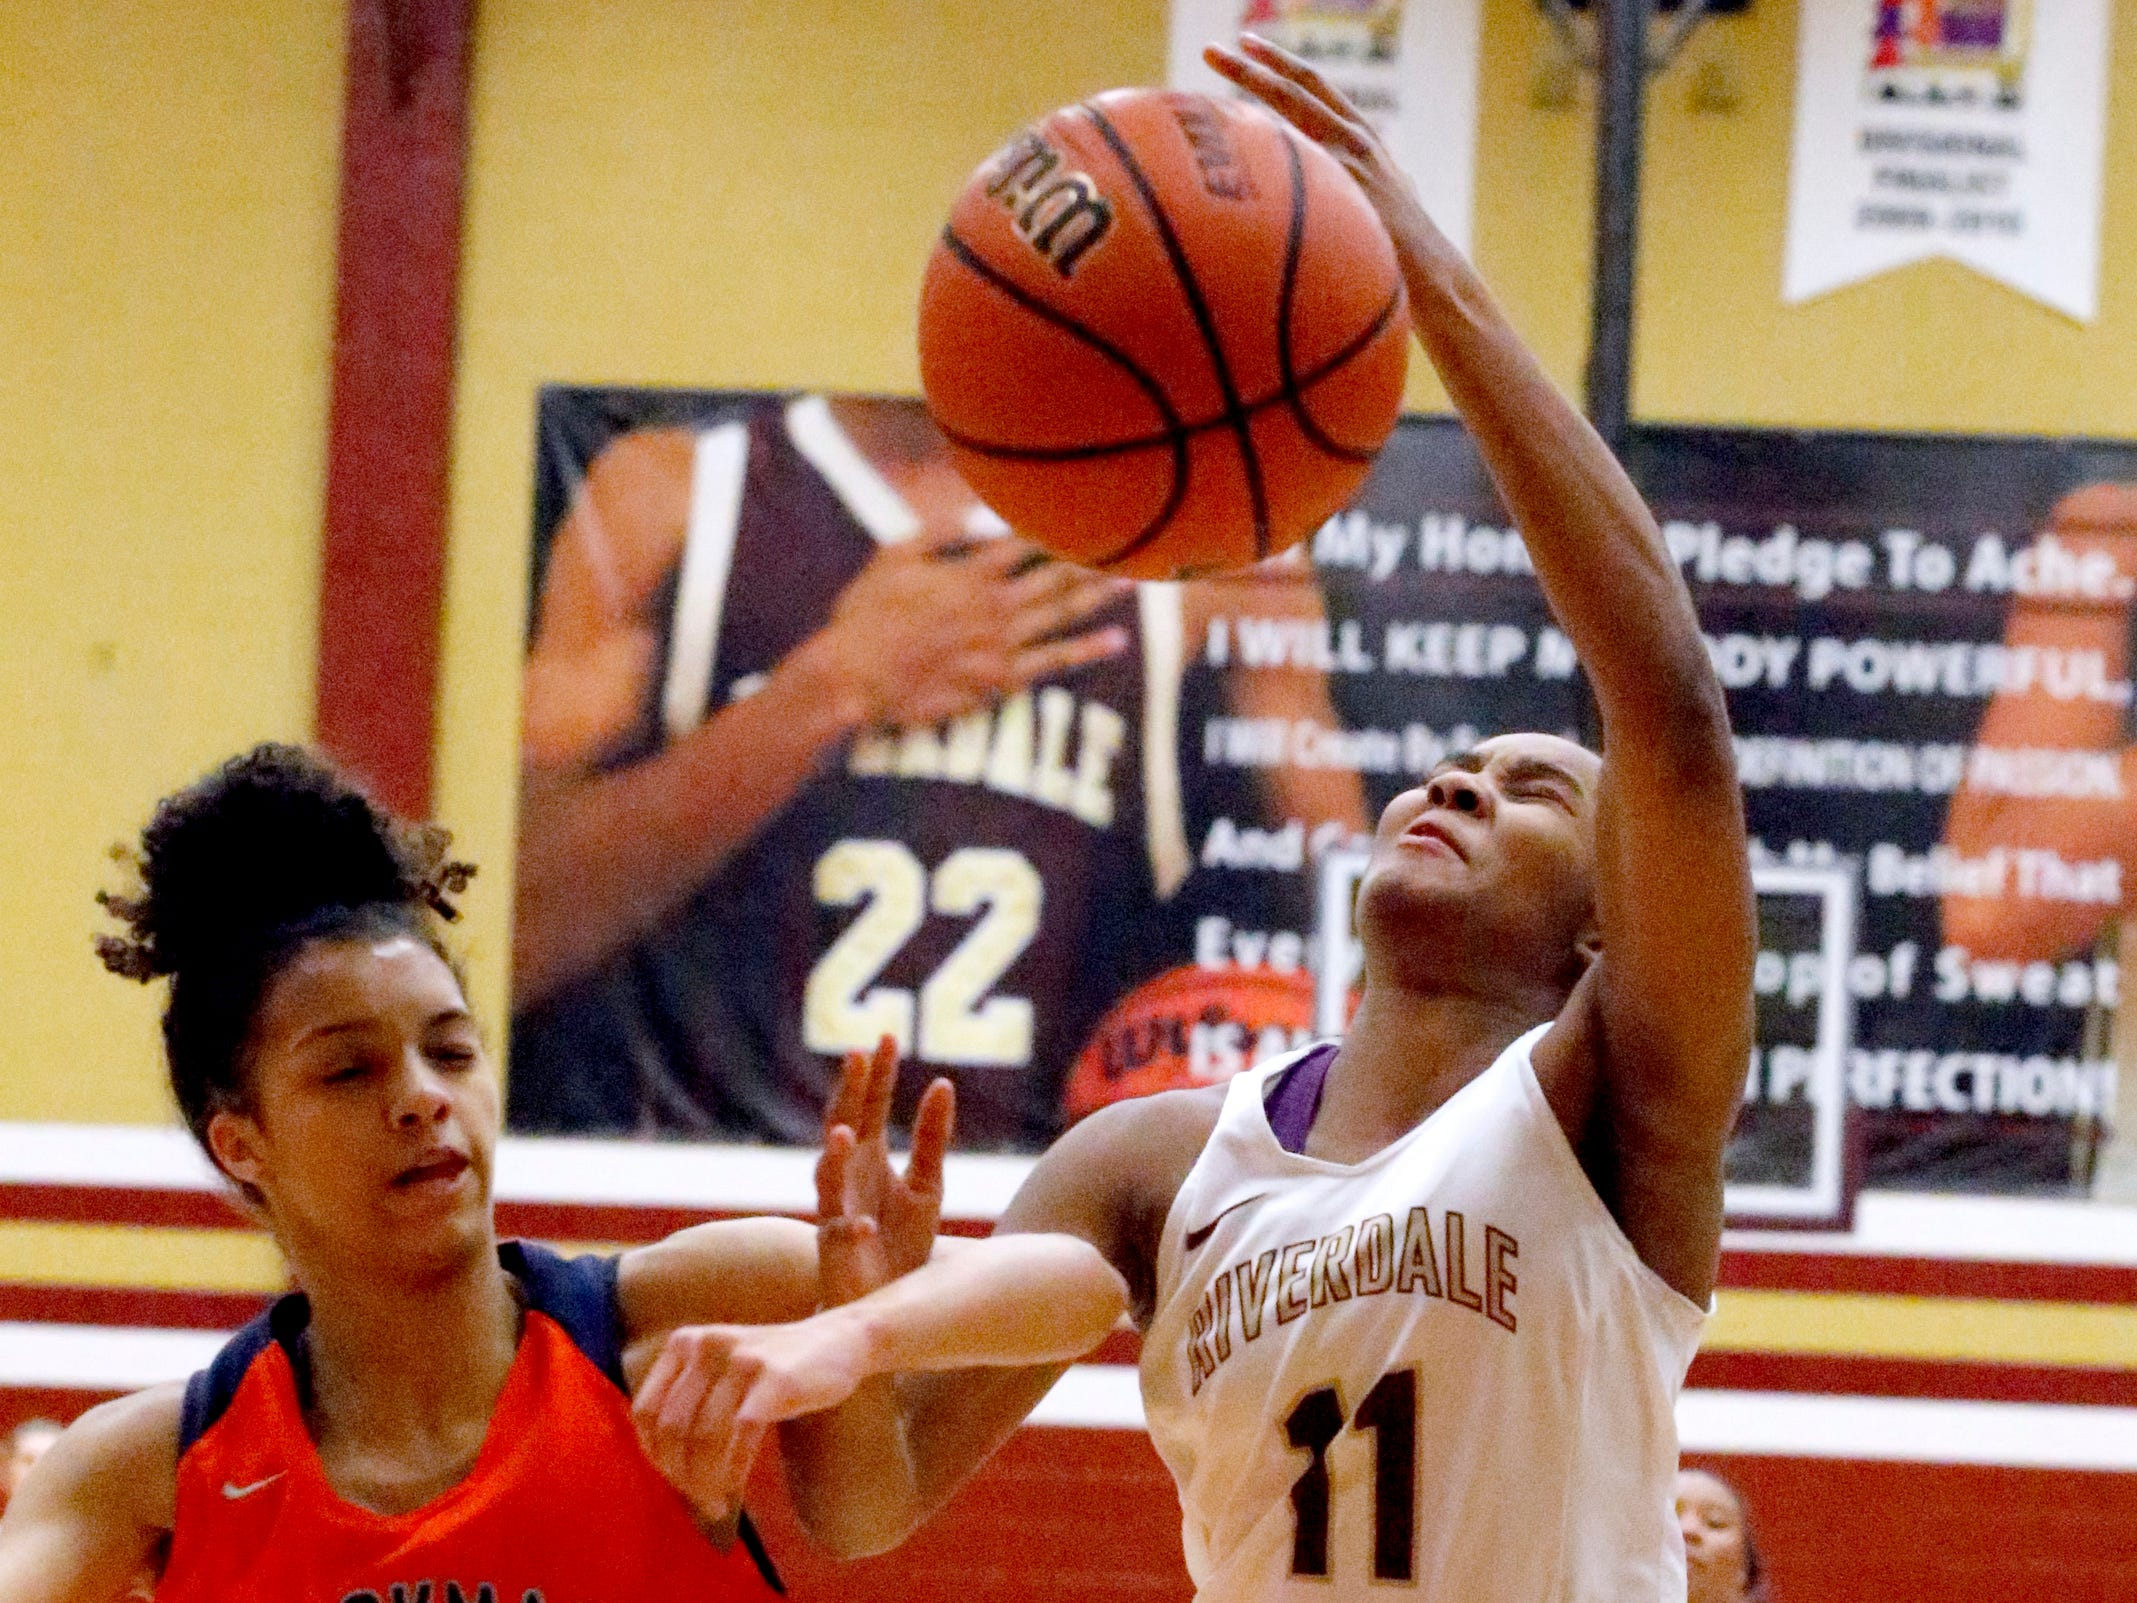 Riverdale's Aislynn Hayes (11) goes up for a shot as Blackman's Victoria Page (15) defends her on Tuesday Jan. 8, 2019